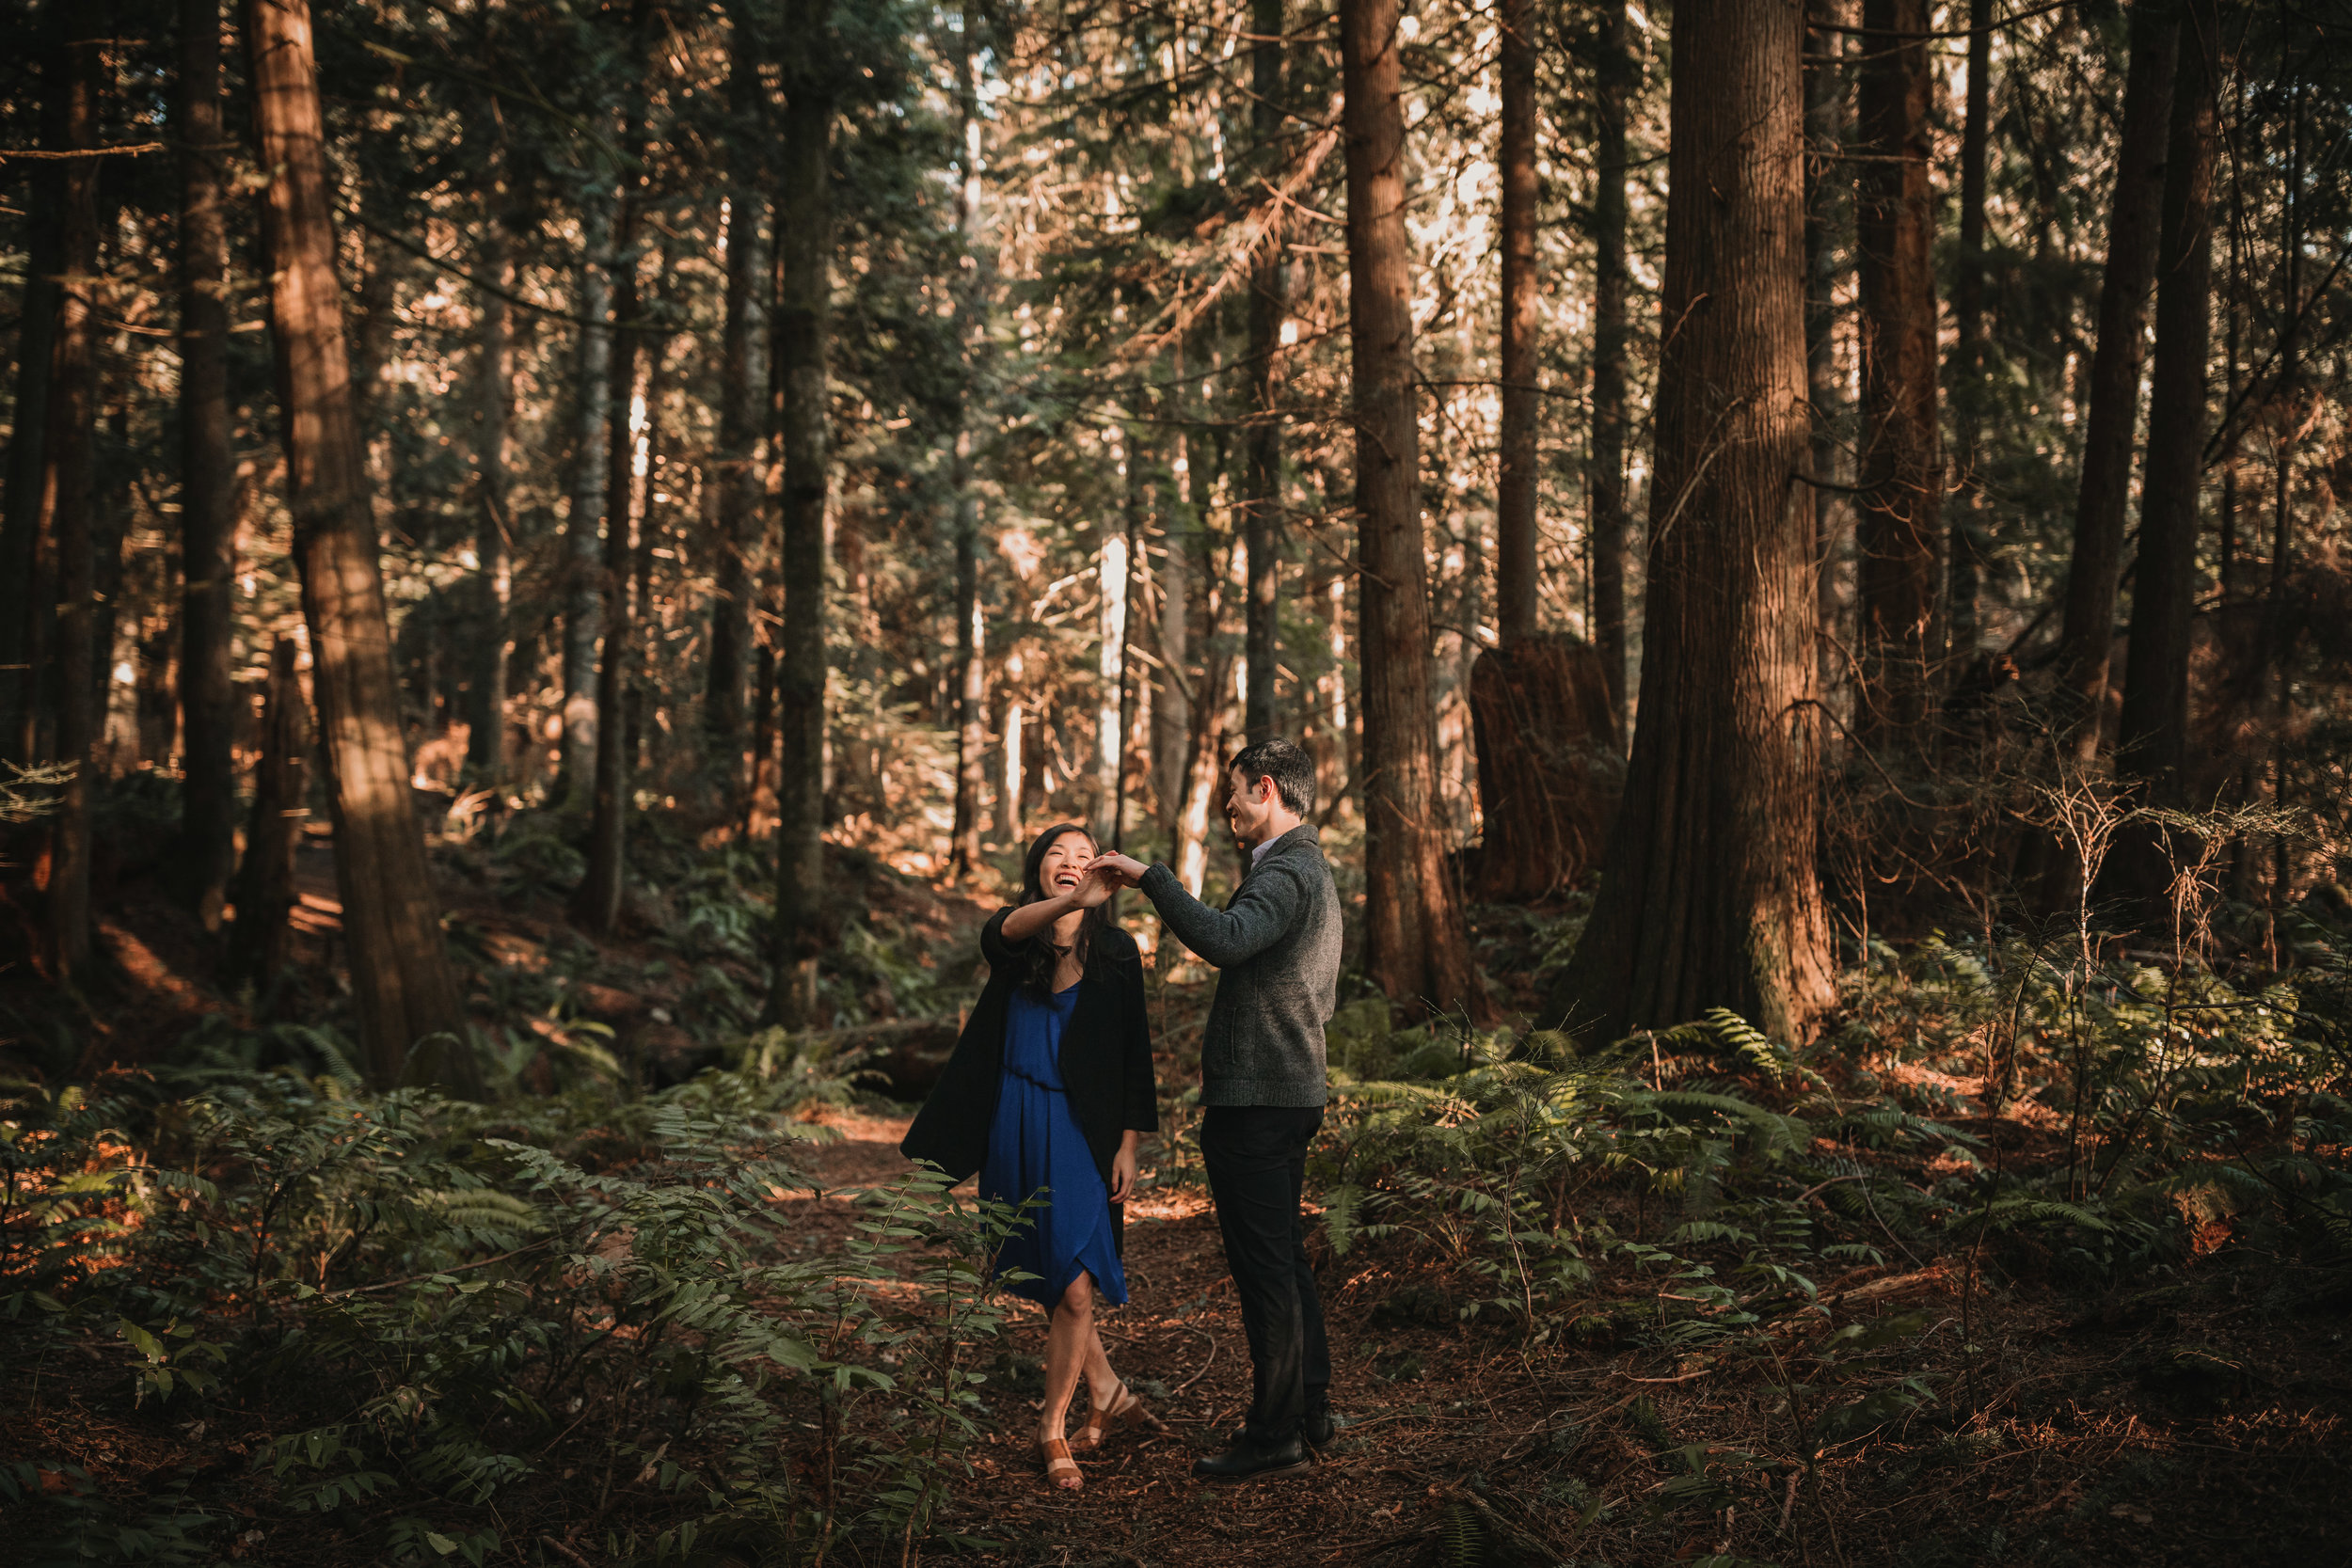 Sunshine Coast Forest Engagement Photos — Jennifer Picard Photography — Vancouver Wedding Photographer & Videographer — 383.JPG